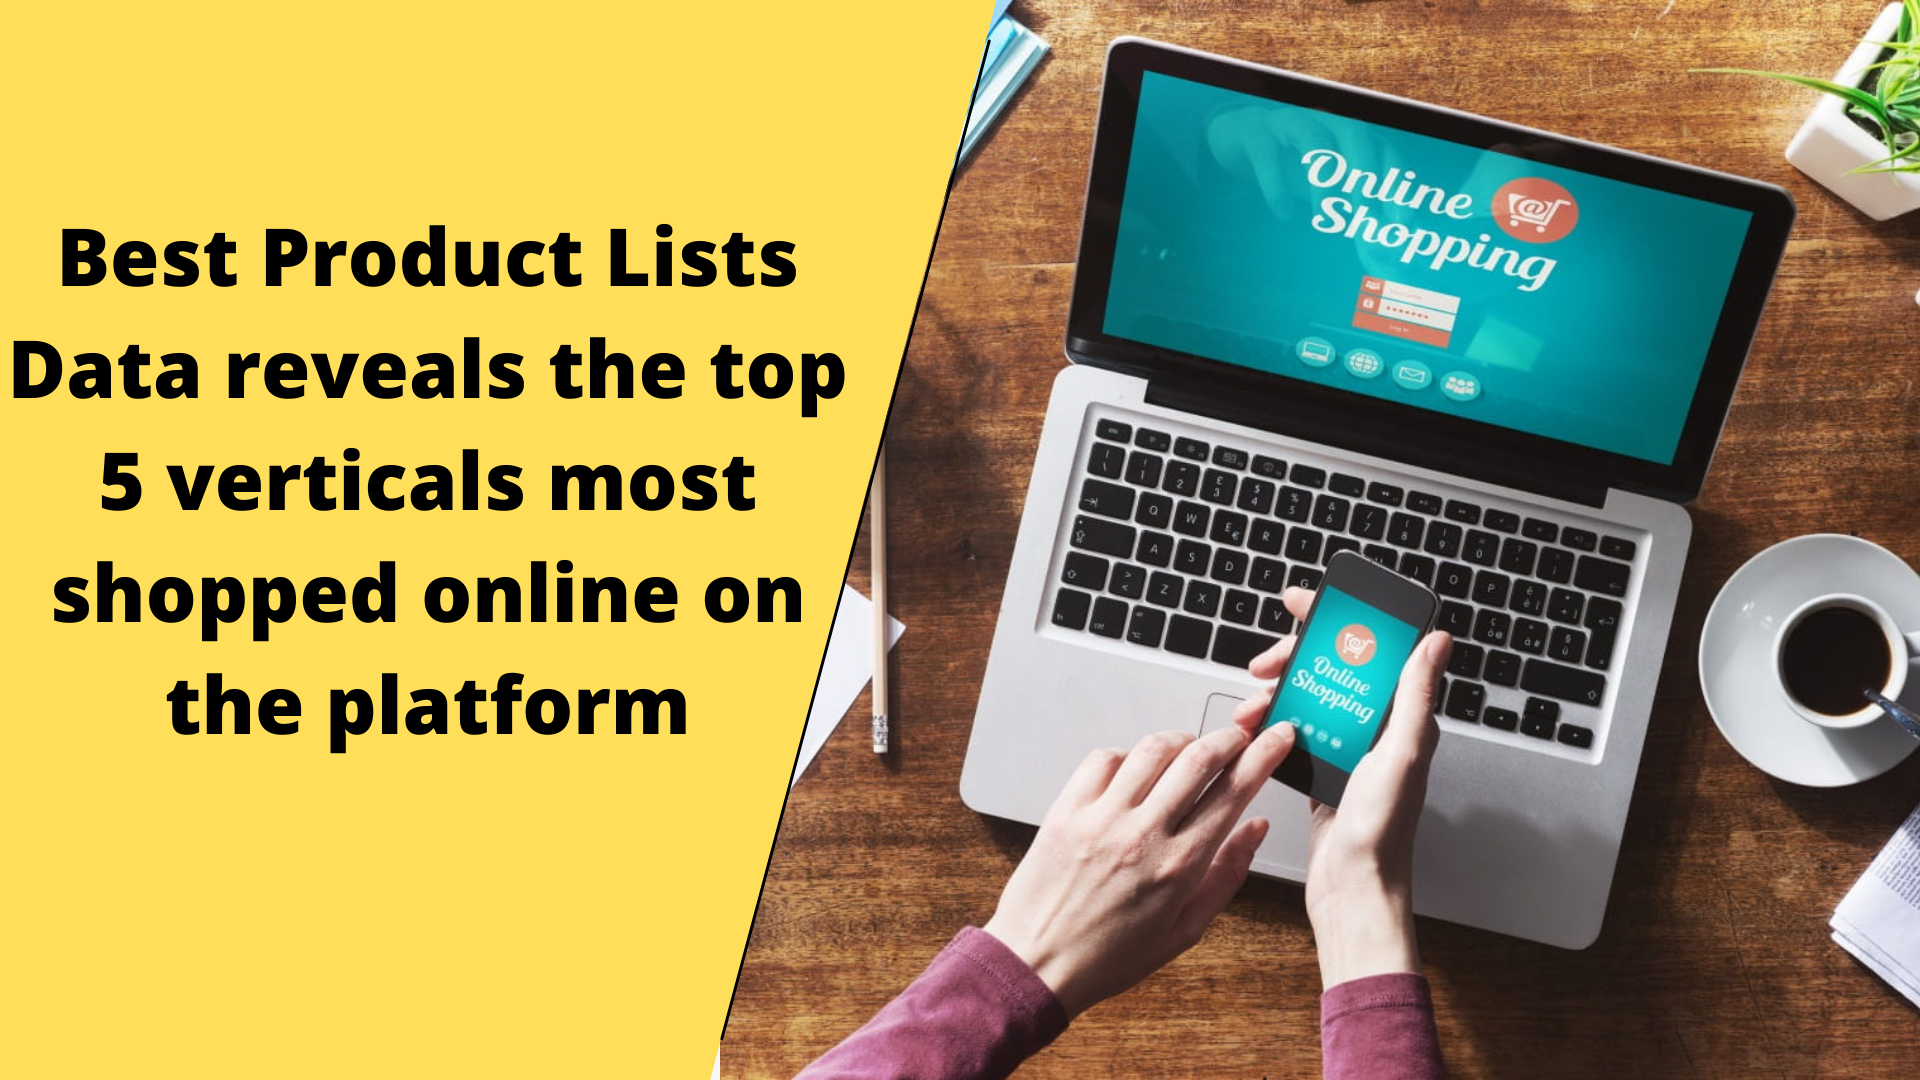 Best Product Lists Data reveals the top 5 verticals most shopped online on the platform